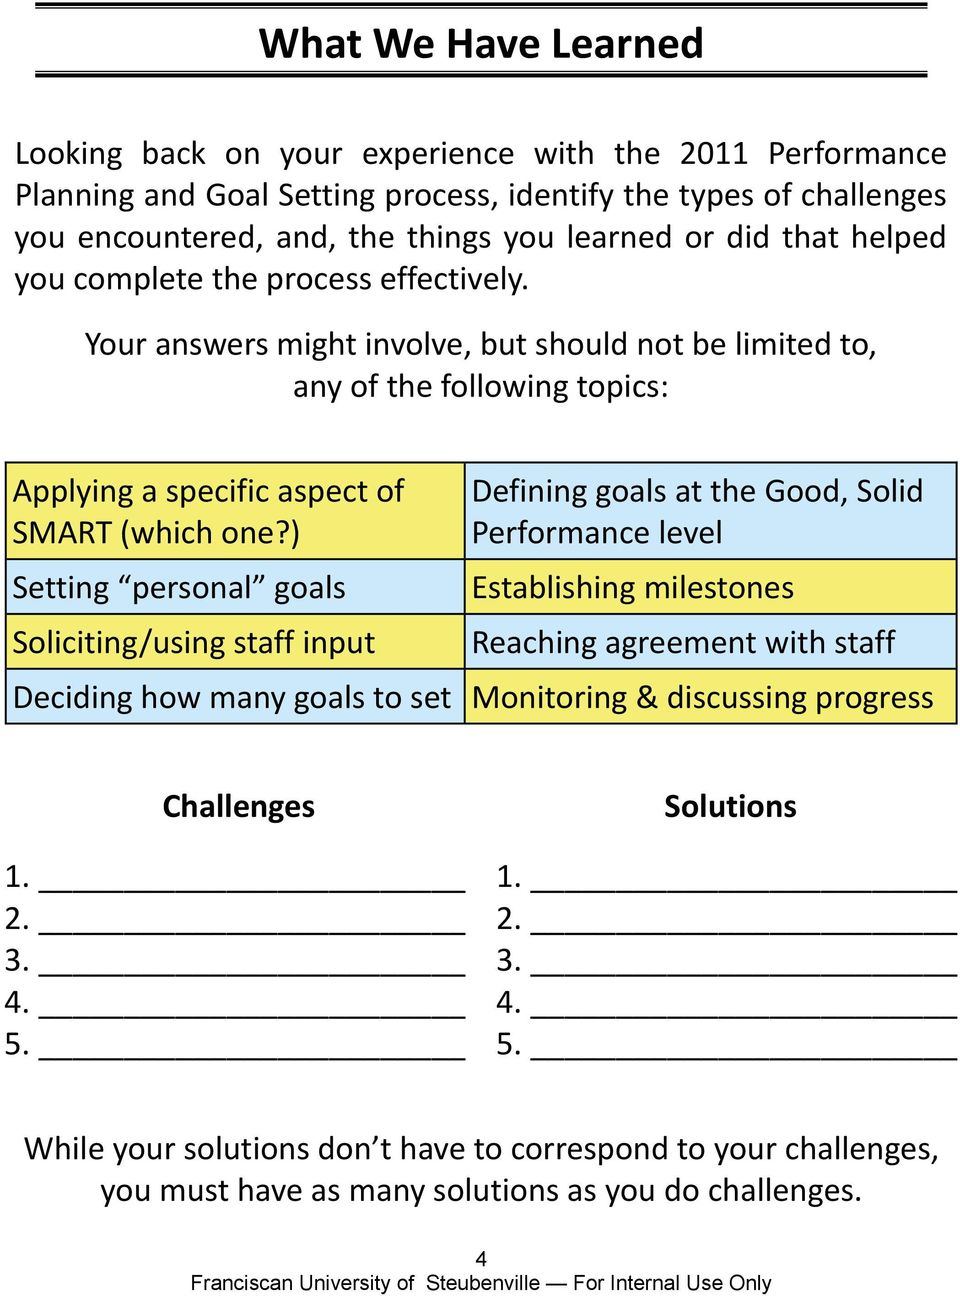 ) Setting personal goals Soliciting/using staff input Defining goals at the Good, Solid Performance level Establishing milestones Reaching agreement with staff Deciding how many goals to set